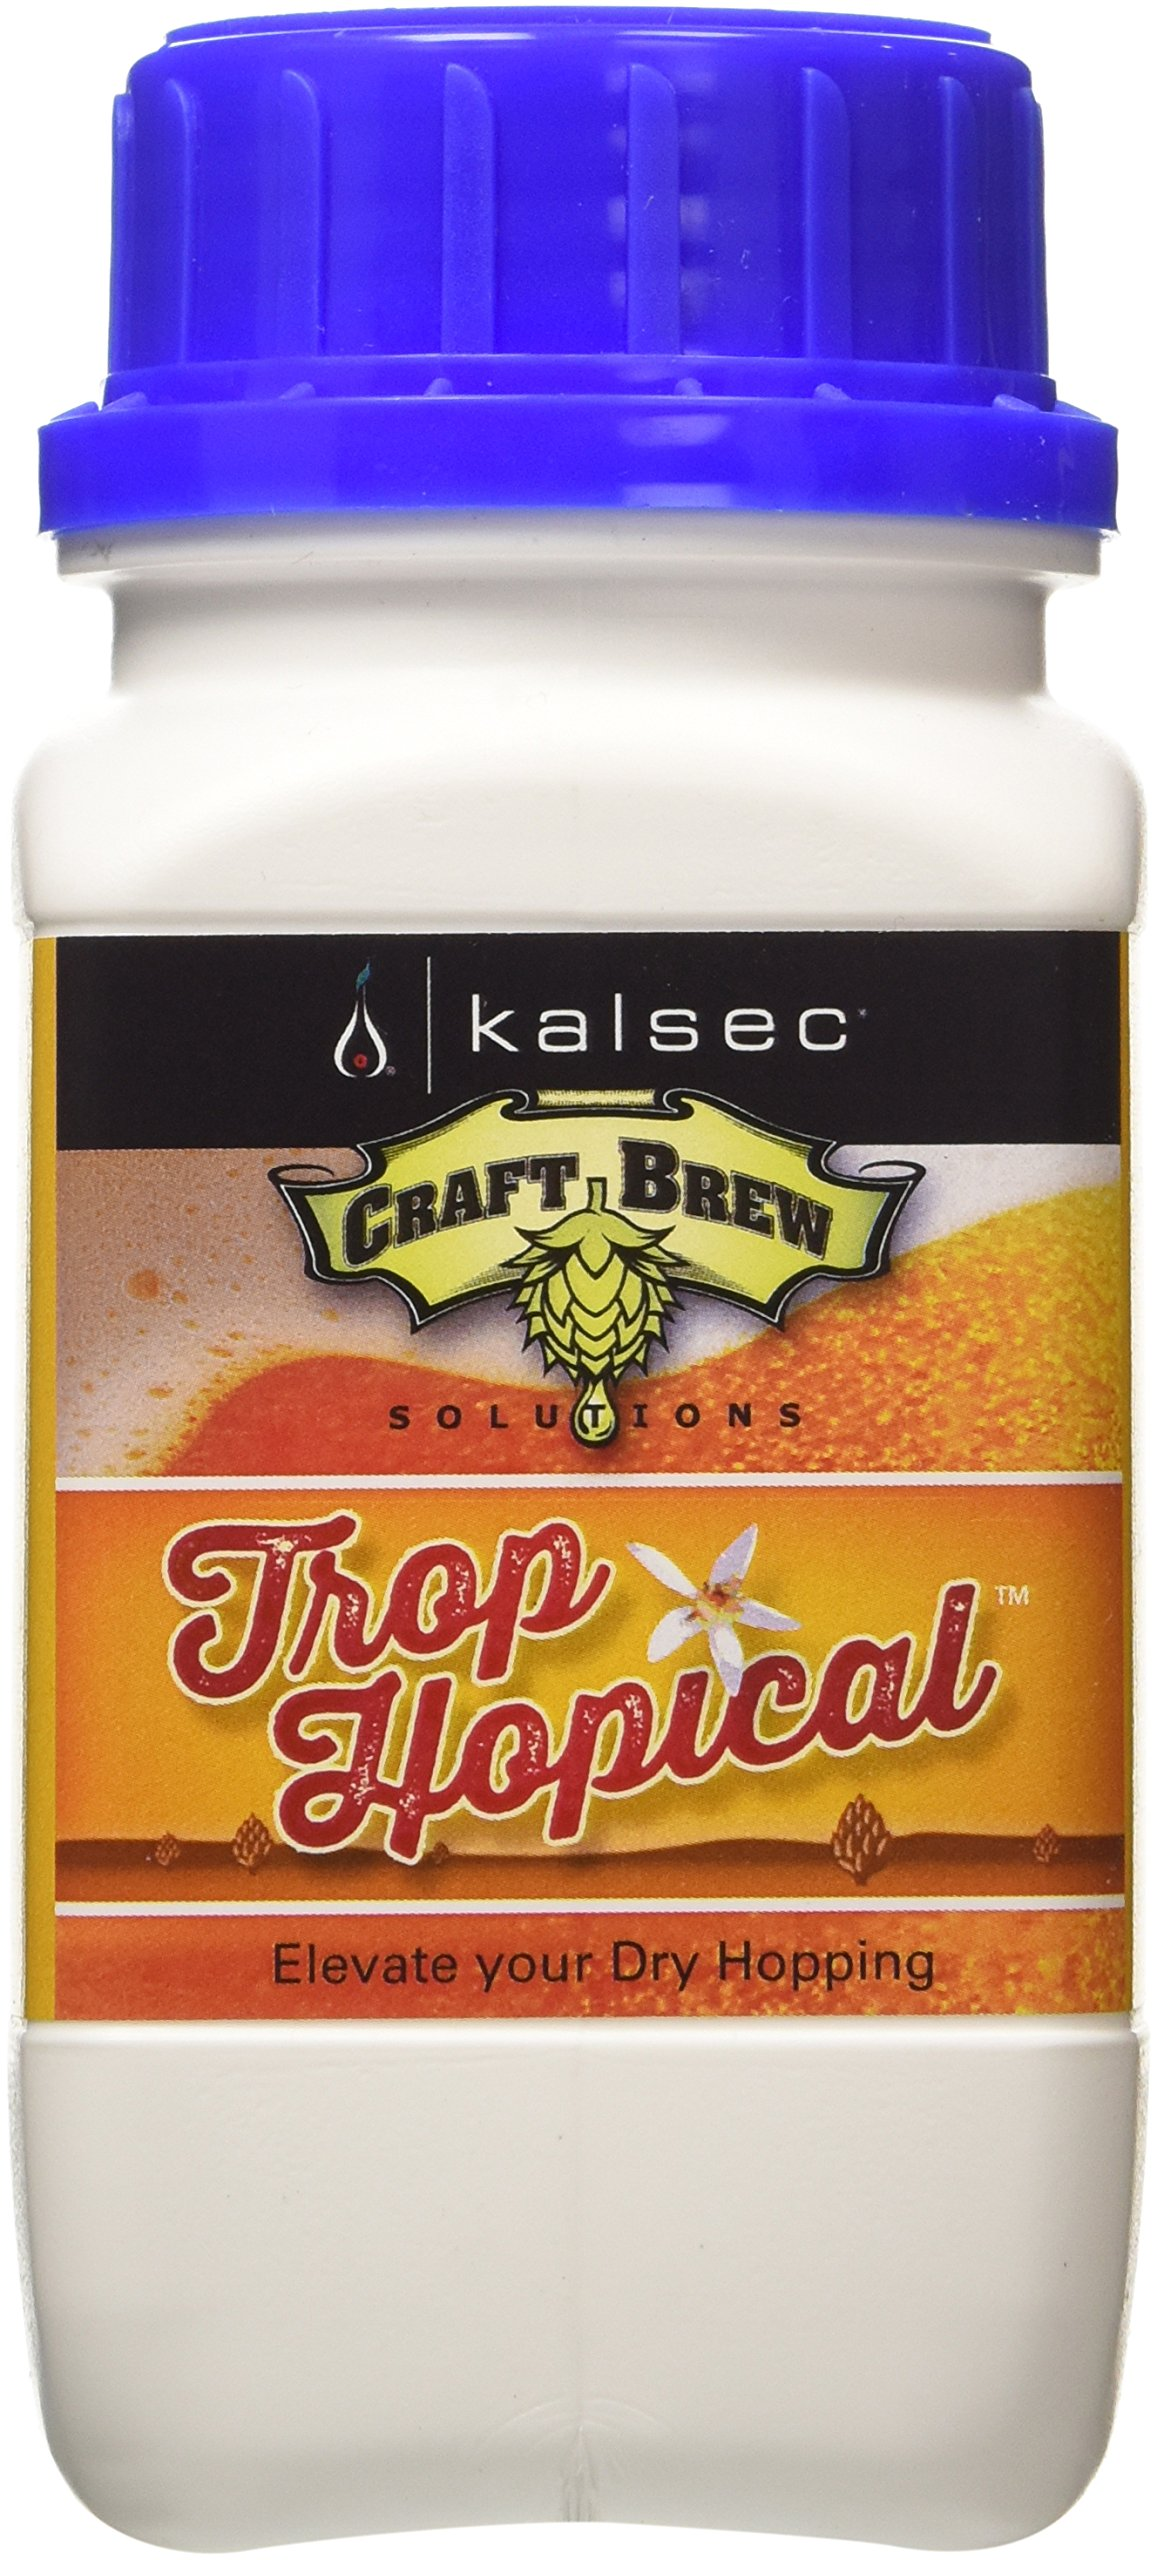 Kalsec Craft Brew Solutions Trop Hopical™ Advanced Hop Extract [Liquid, 8 Oz. Bottle]